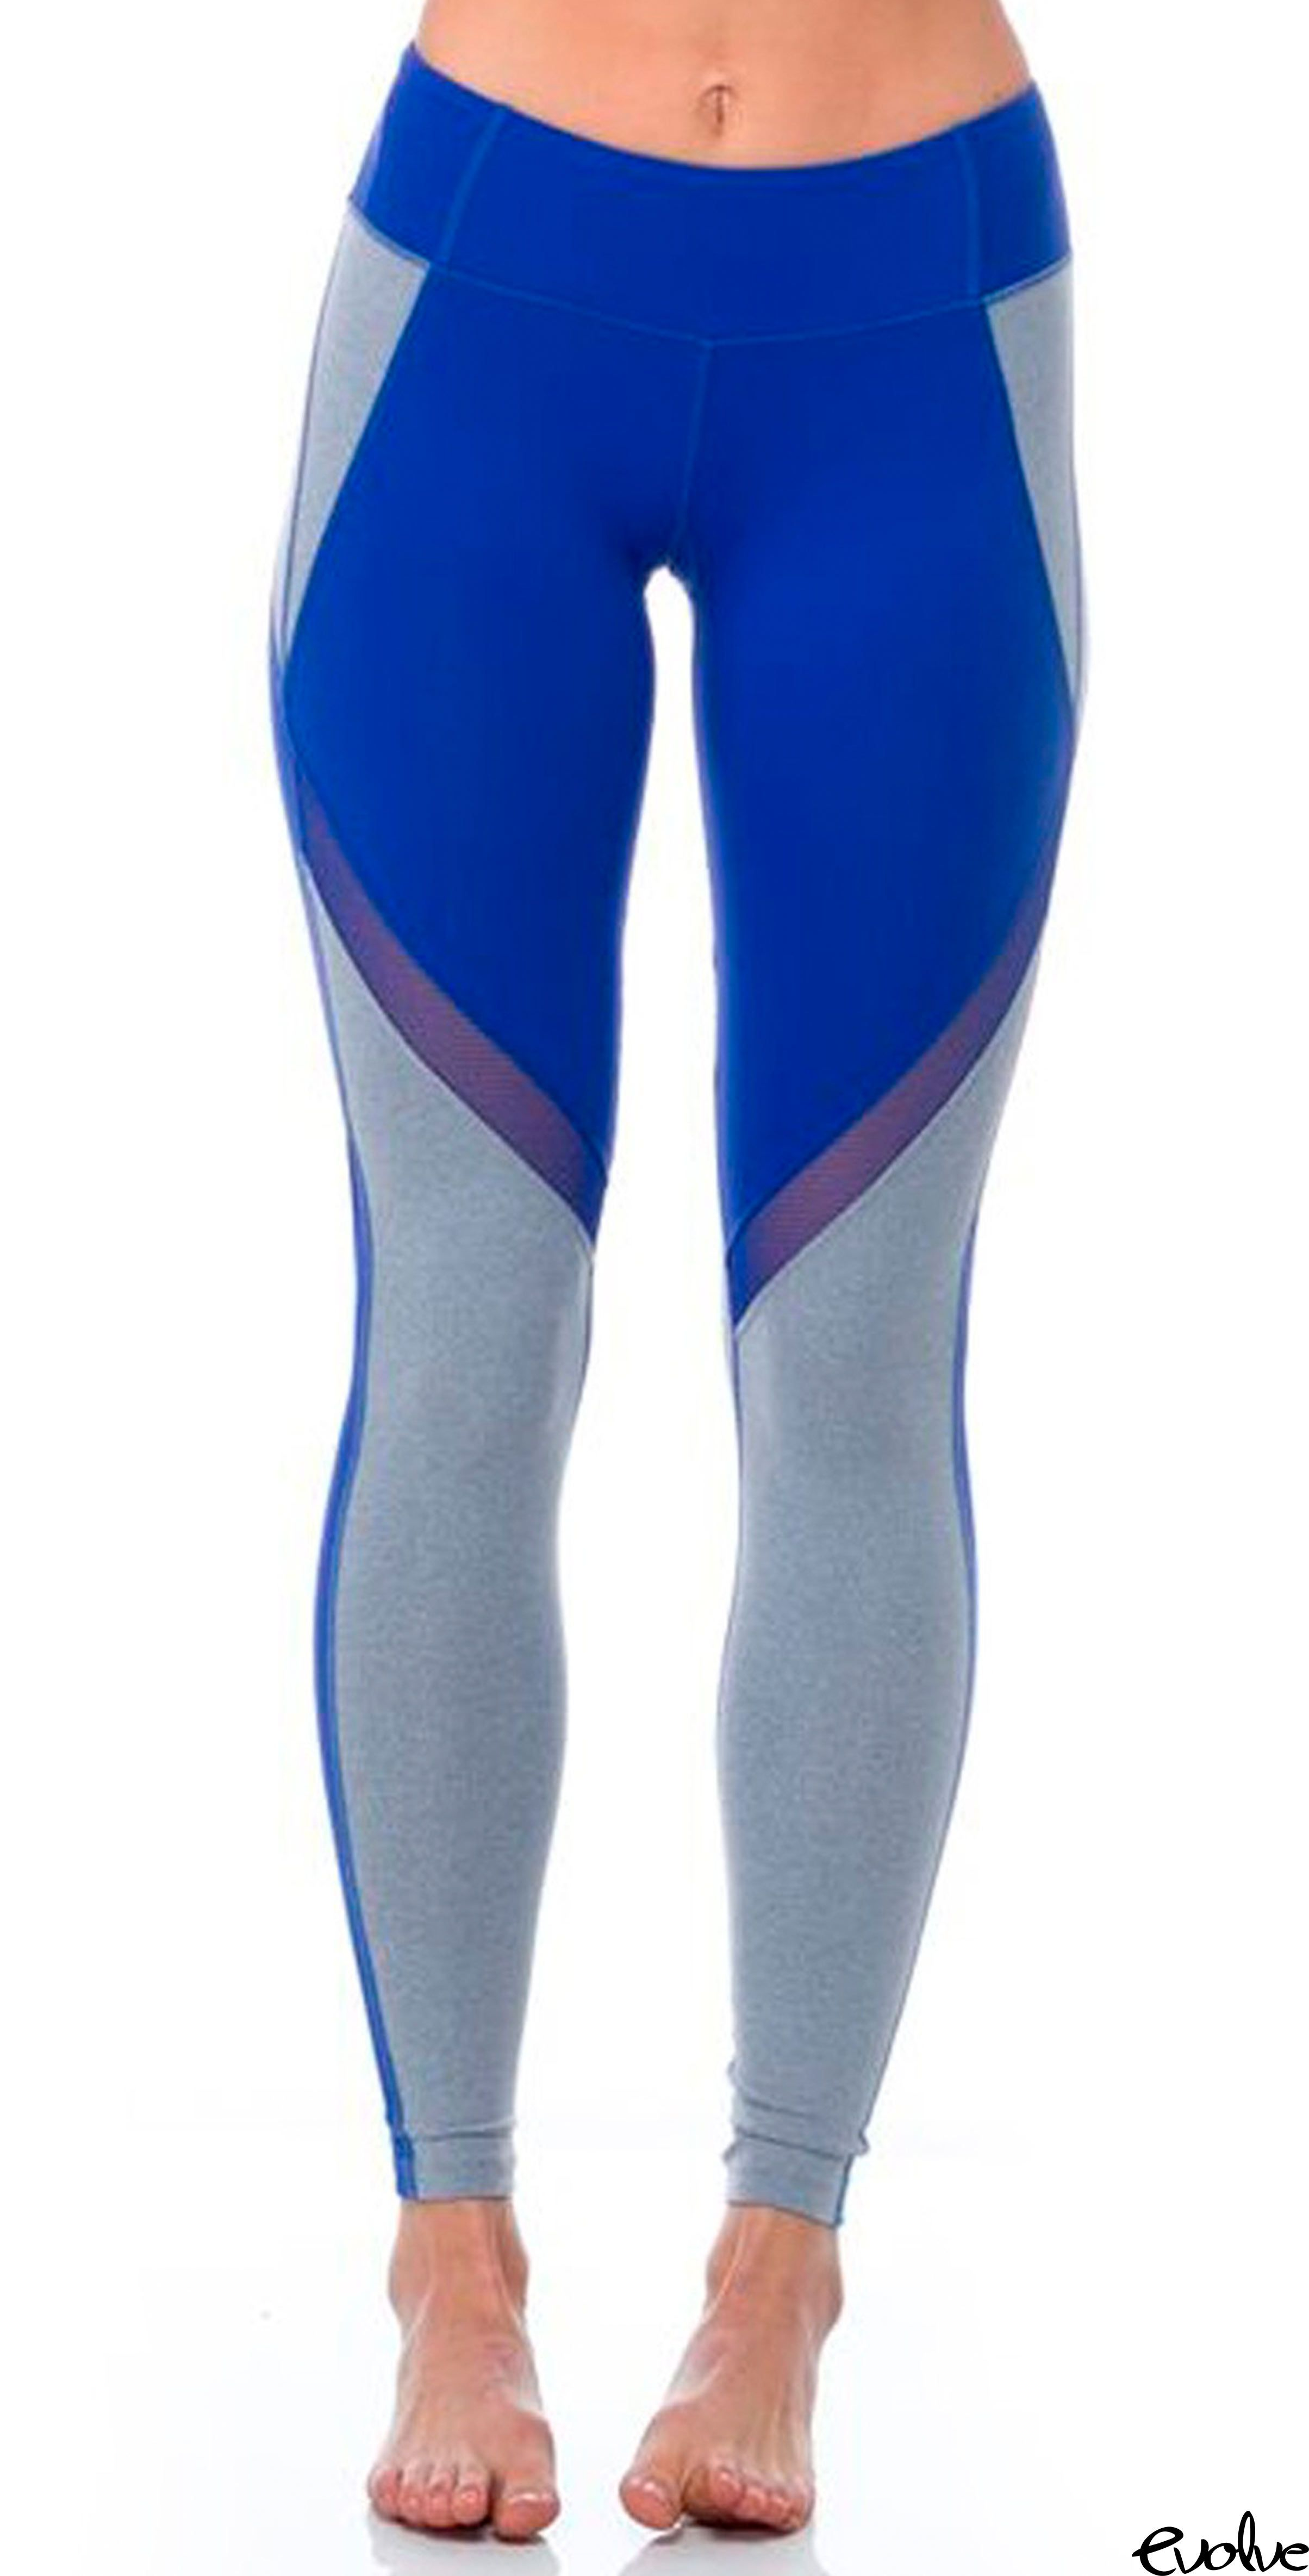 68c633cdfd7bac Brighten up your workout wardrobe with these sapphire Jordan Tights from  Splits59. Shop now at www.evolvefitwear.com.